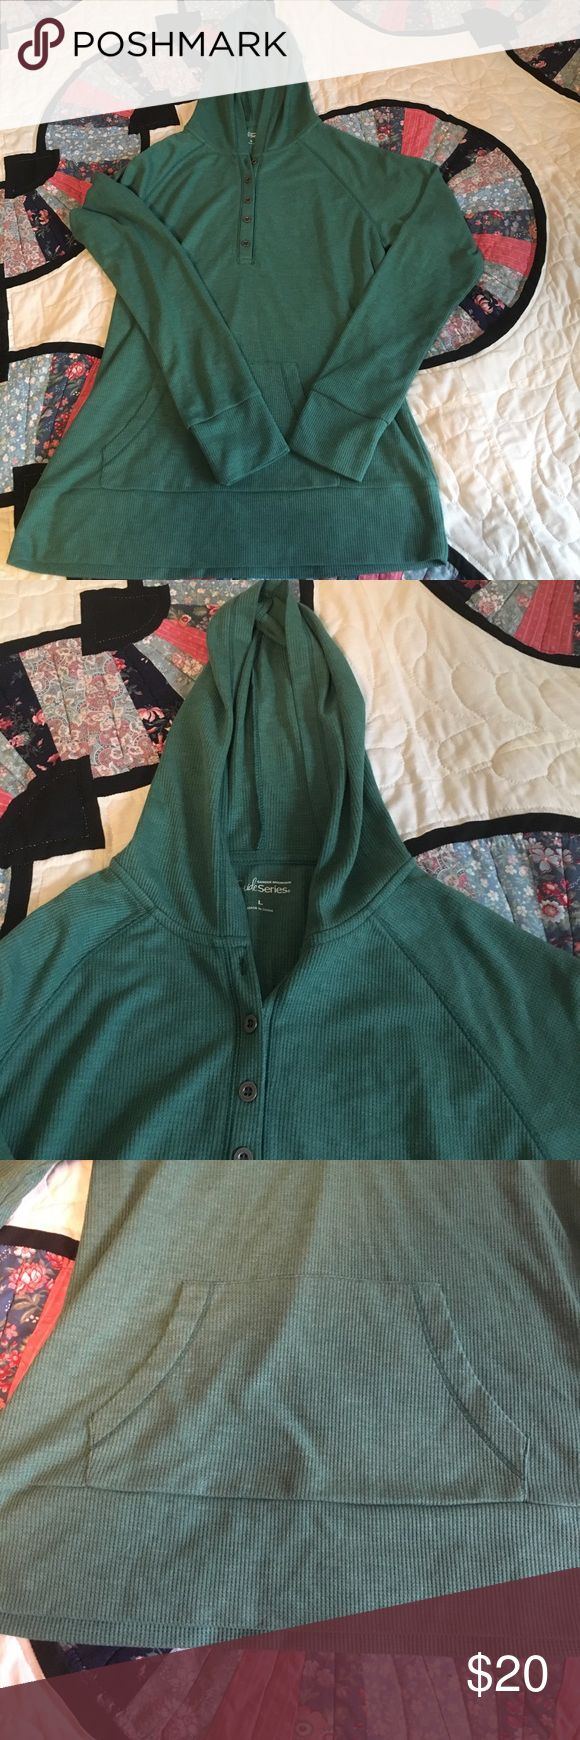 Gander Mountain Guide Series long sleeve Gander Mountain guide series long sleeve green top with hood. Size large. Material is super soft. No tags but never worn. Gander Mountain Tops Tees - Long Sleeve